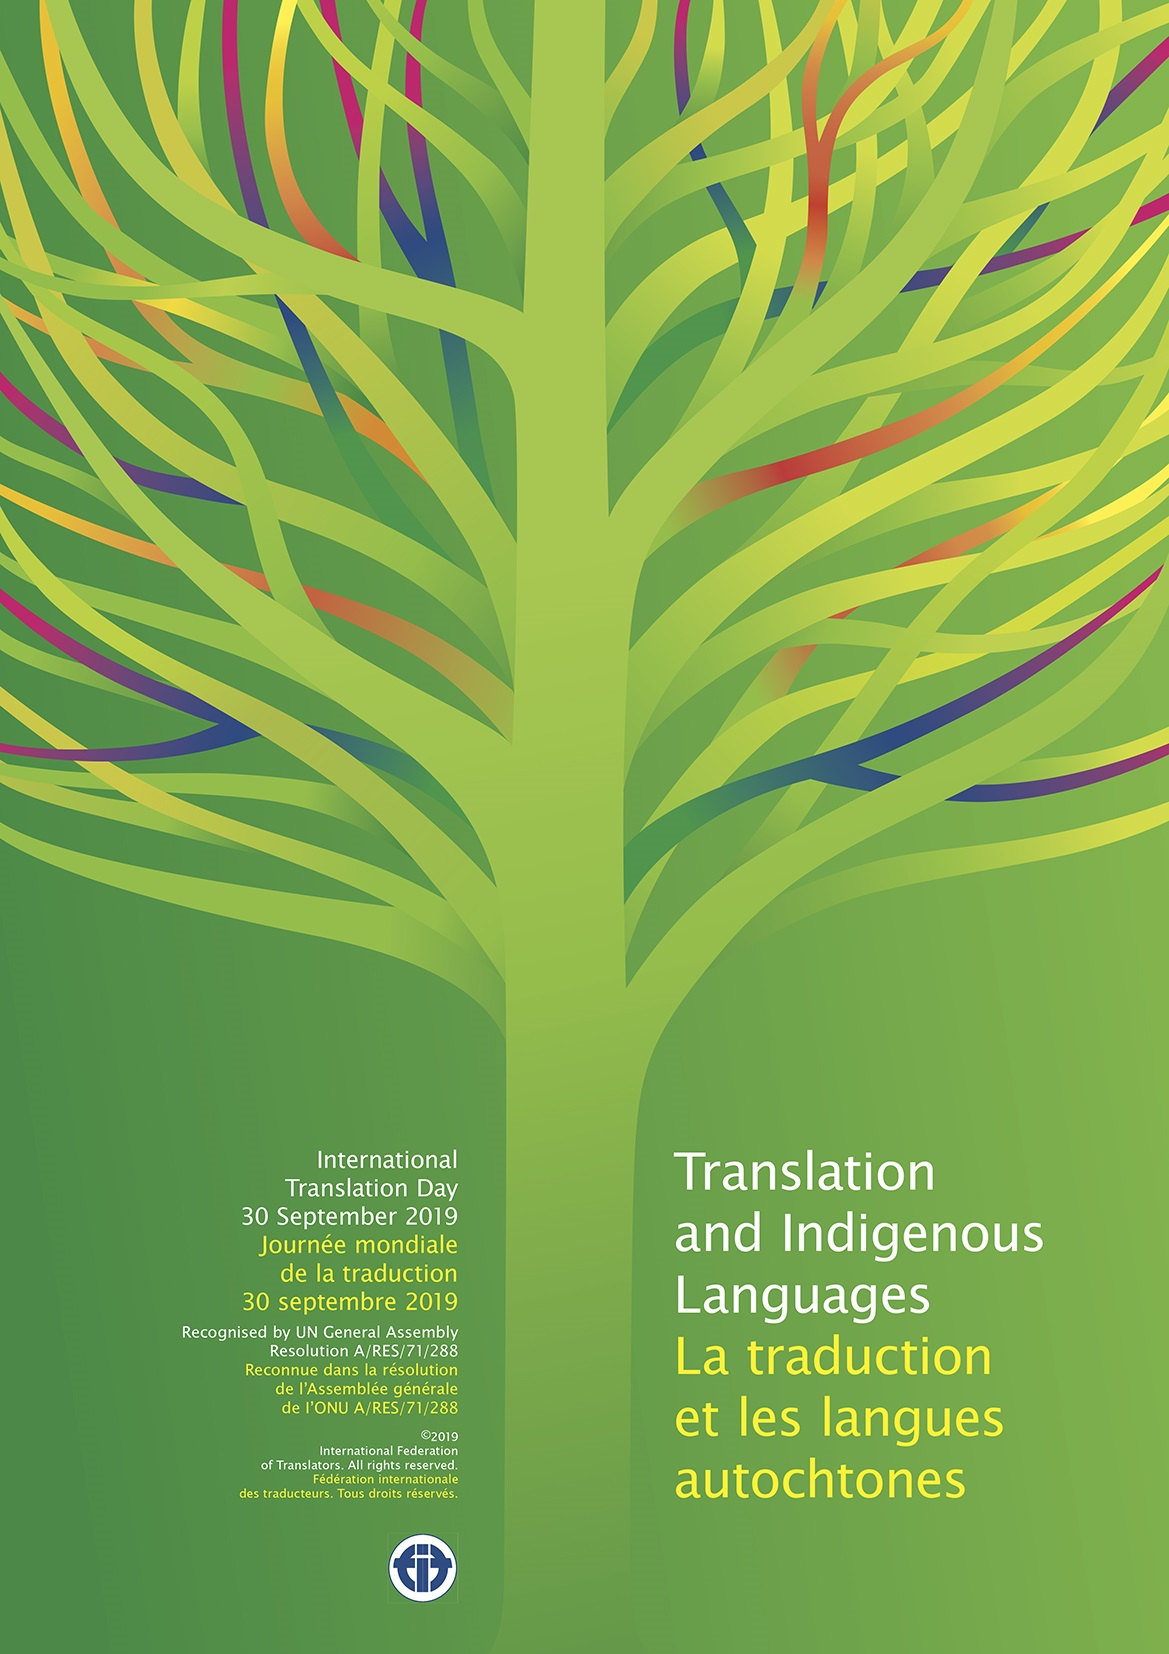 2019 International Translation Day